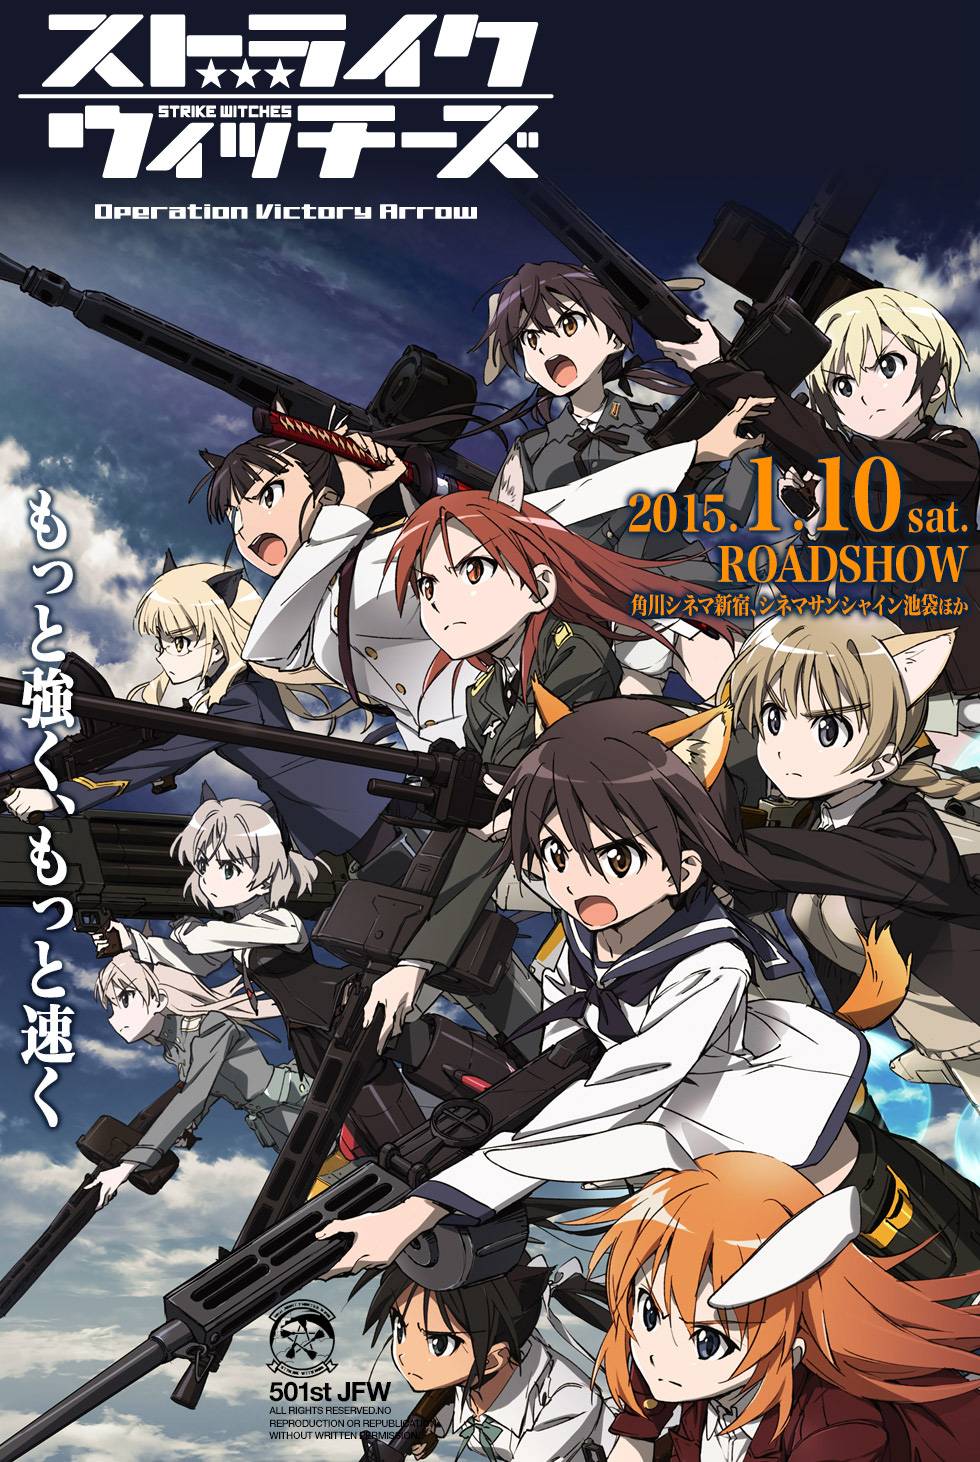 Strike-Witches_Haruhichan.com-Victory-Arrow-Vol-2-Visual